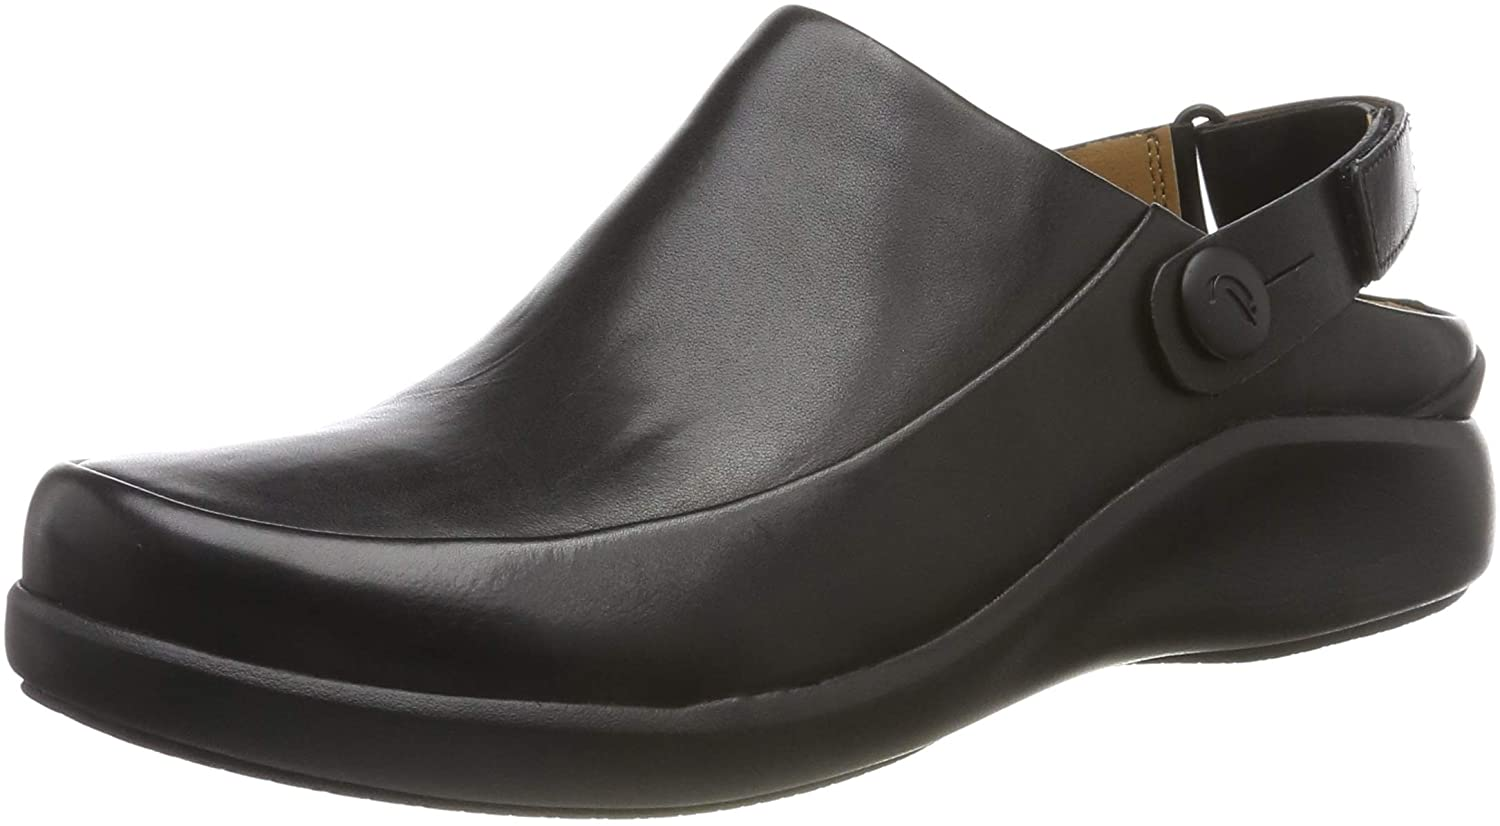 Clarks Womens Un.loop2 Strap Loafers, Black (Black Leather Black Leather), 4.5 UK